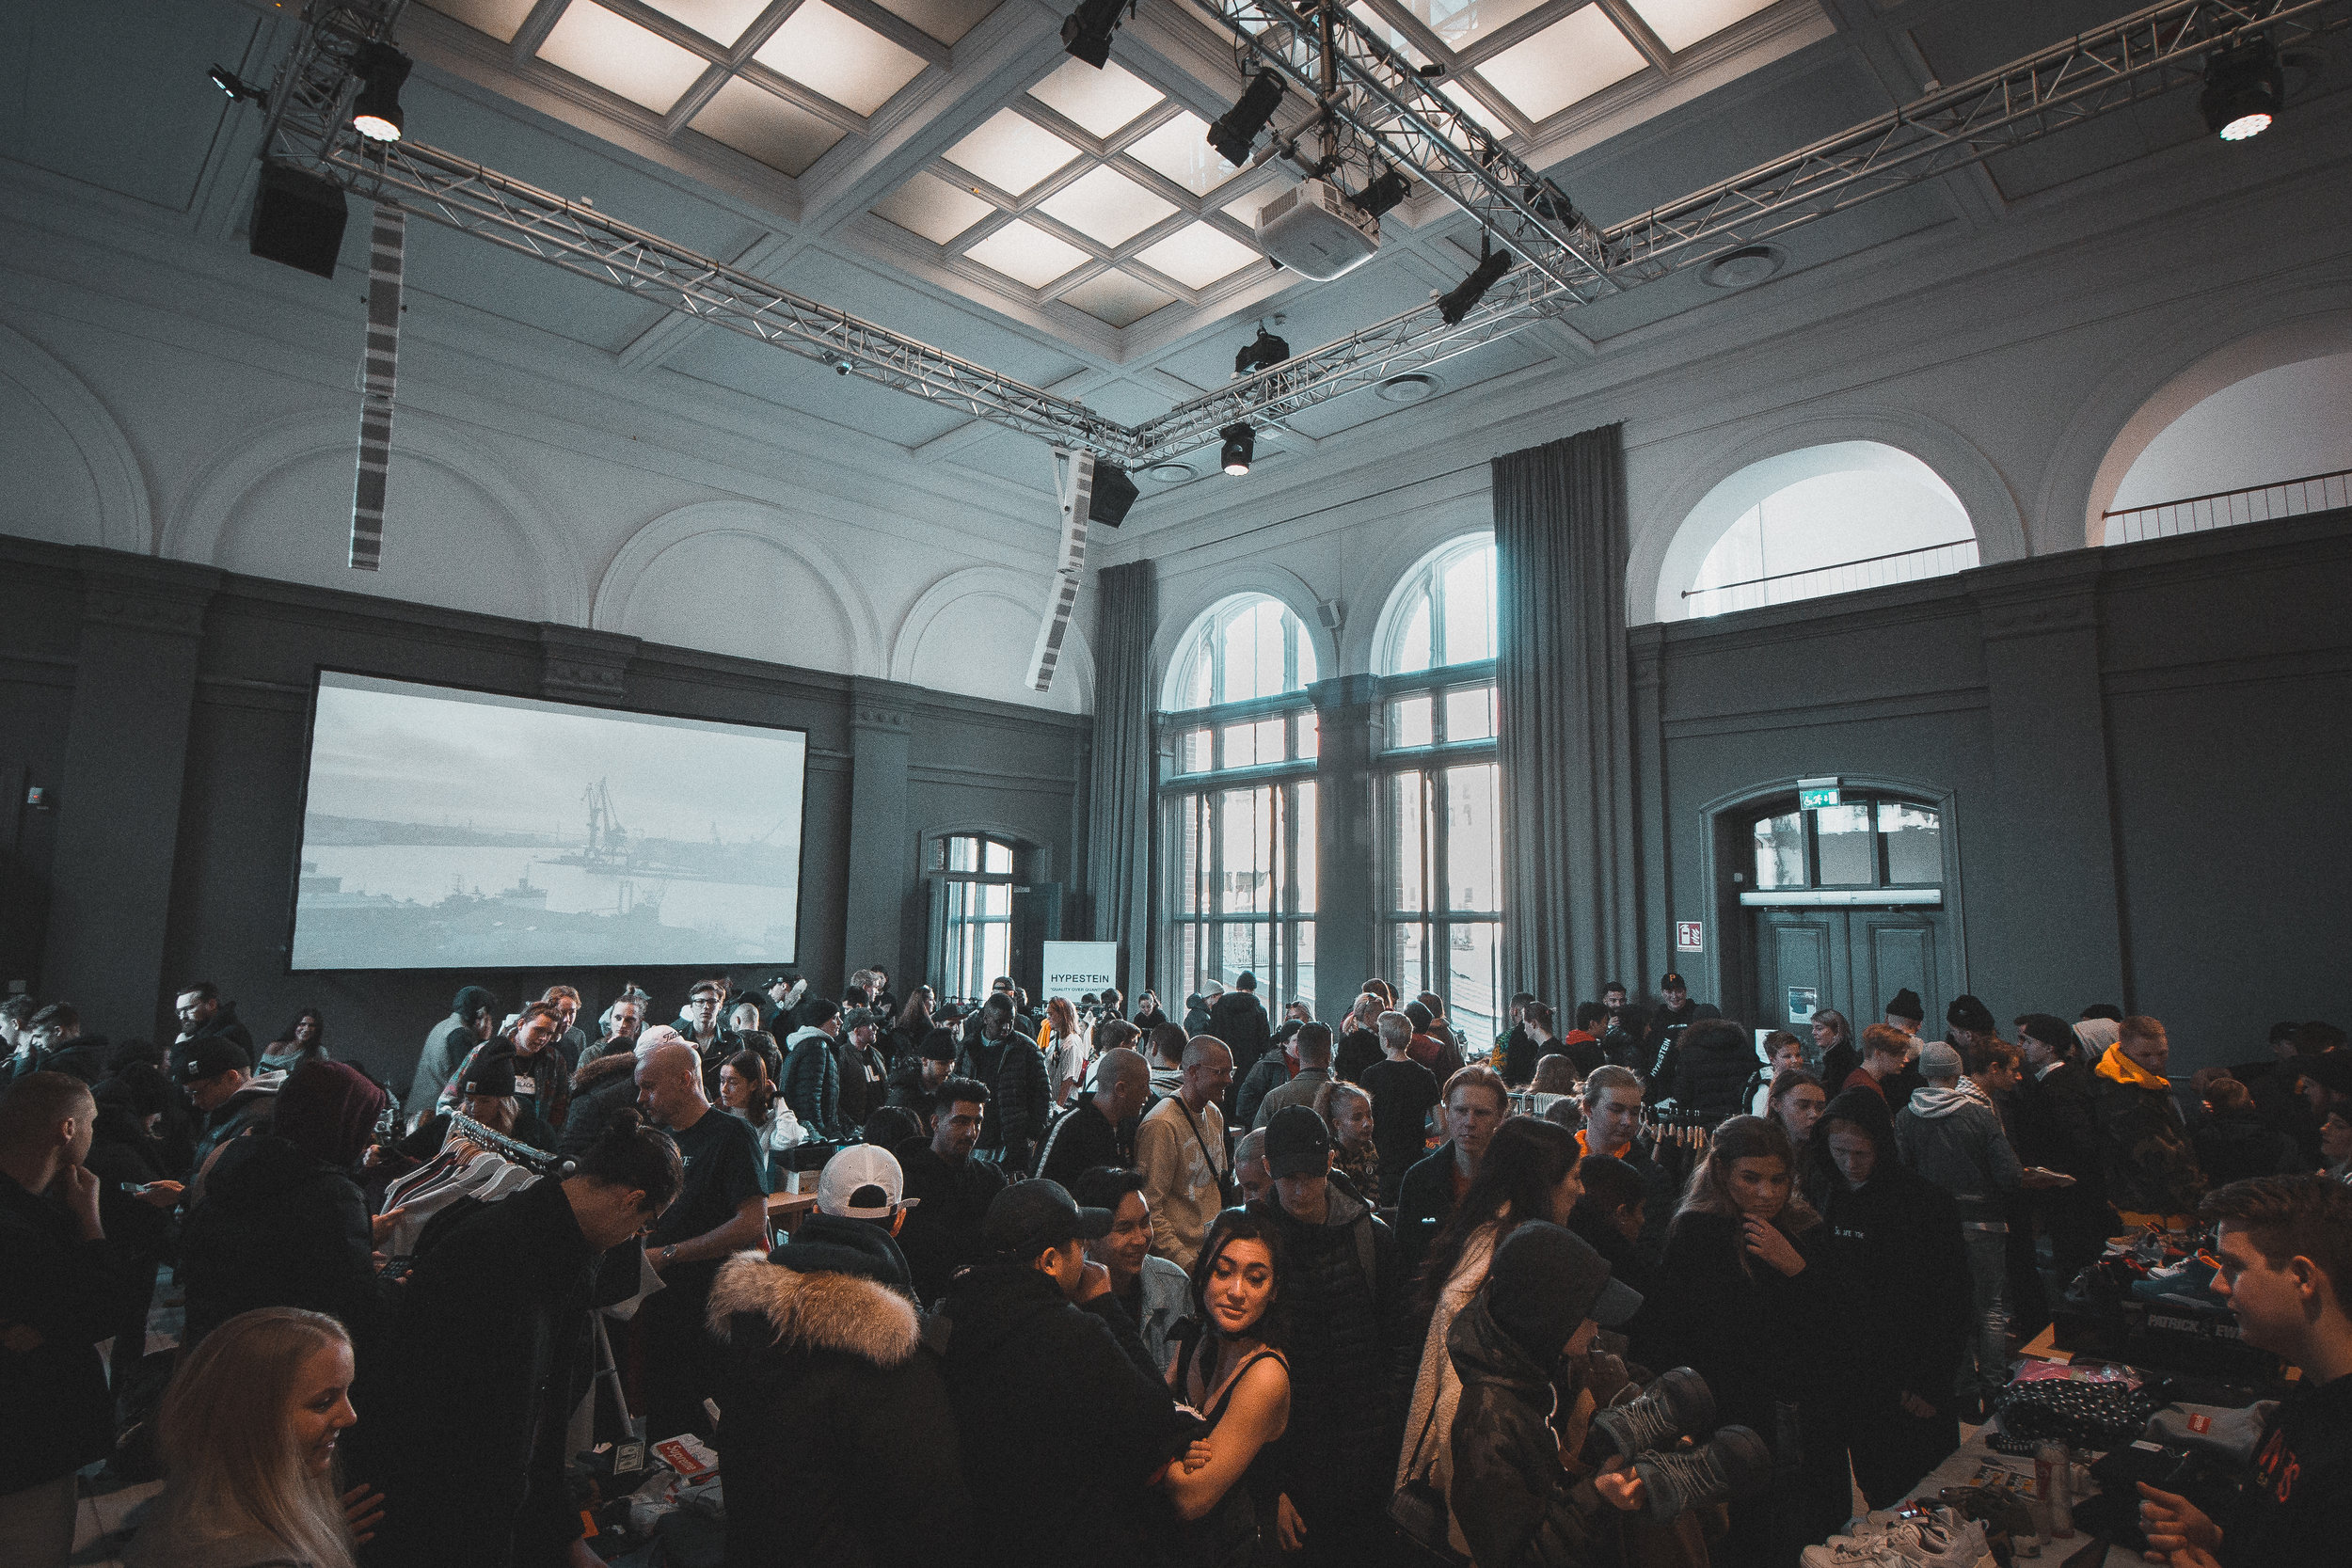 DETAILS - An event highlight is the perfect way to get people excited. We have covered all different types of events and produced a variety of highlight reels, capturing all the details along the way.